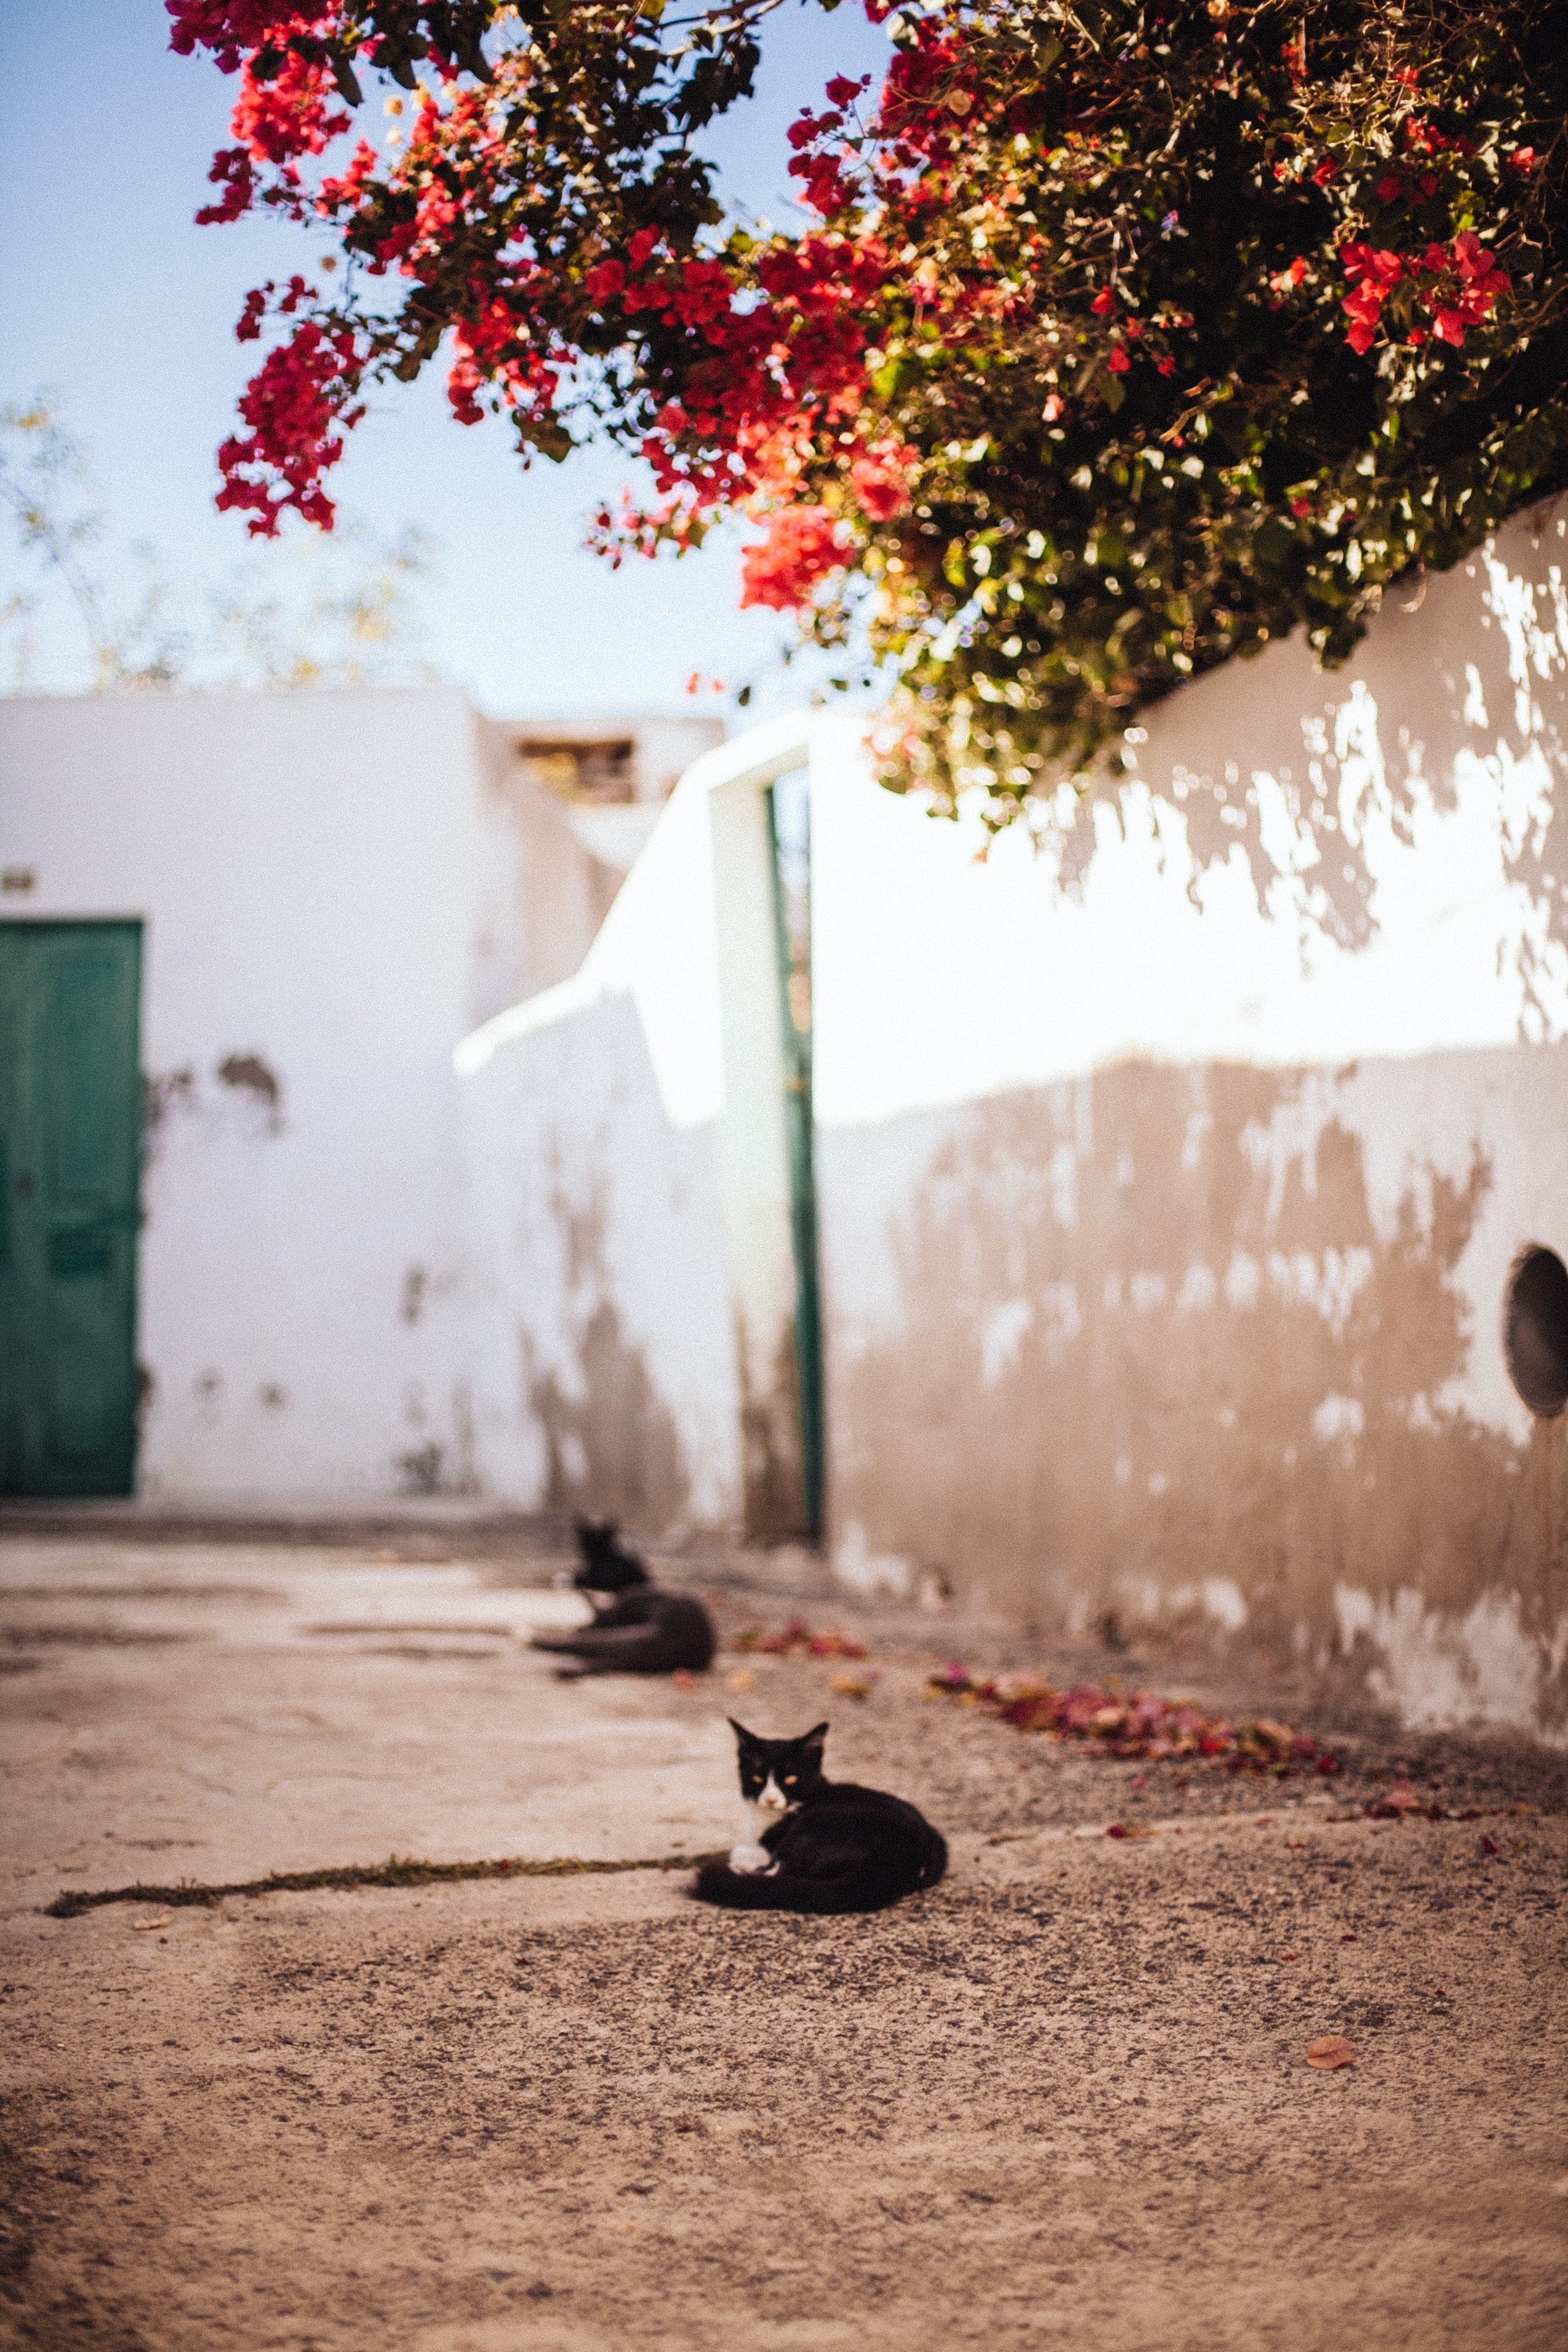 selective focus photography of tuxedo cat lying on brown pavement